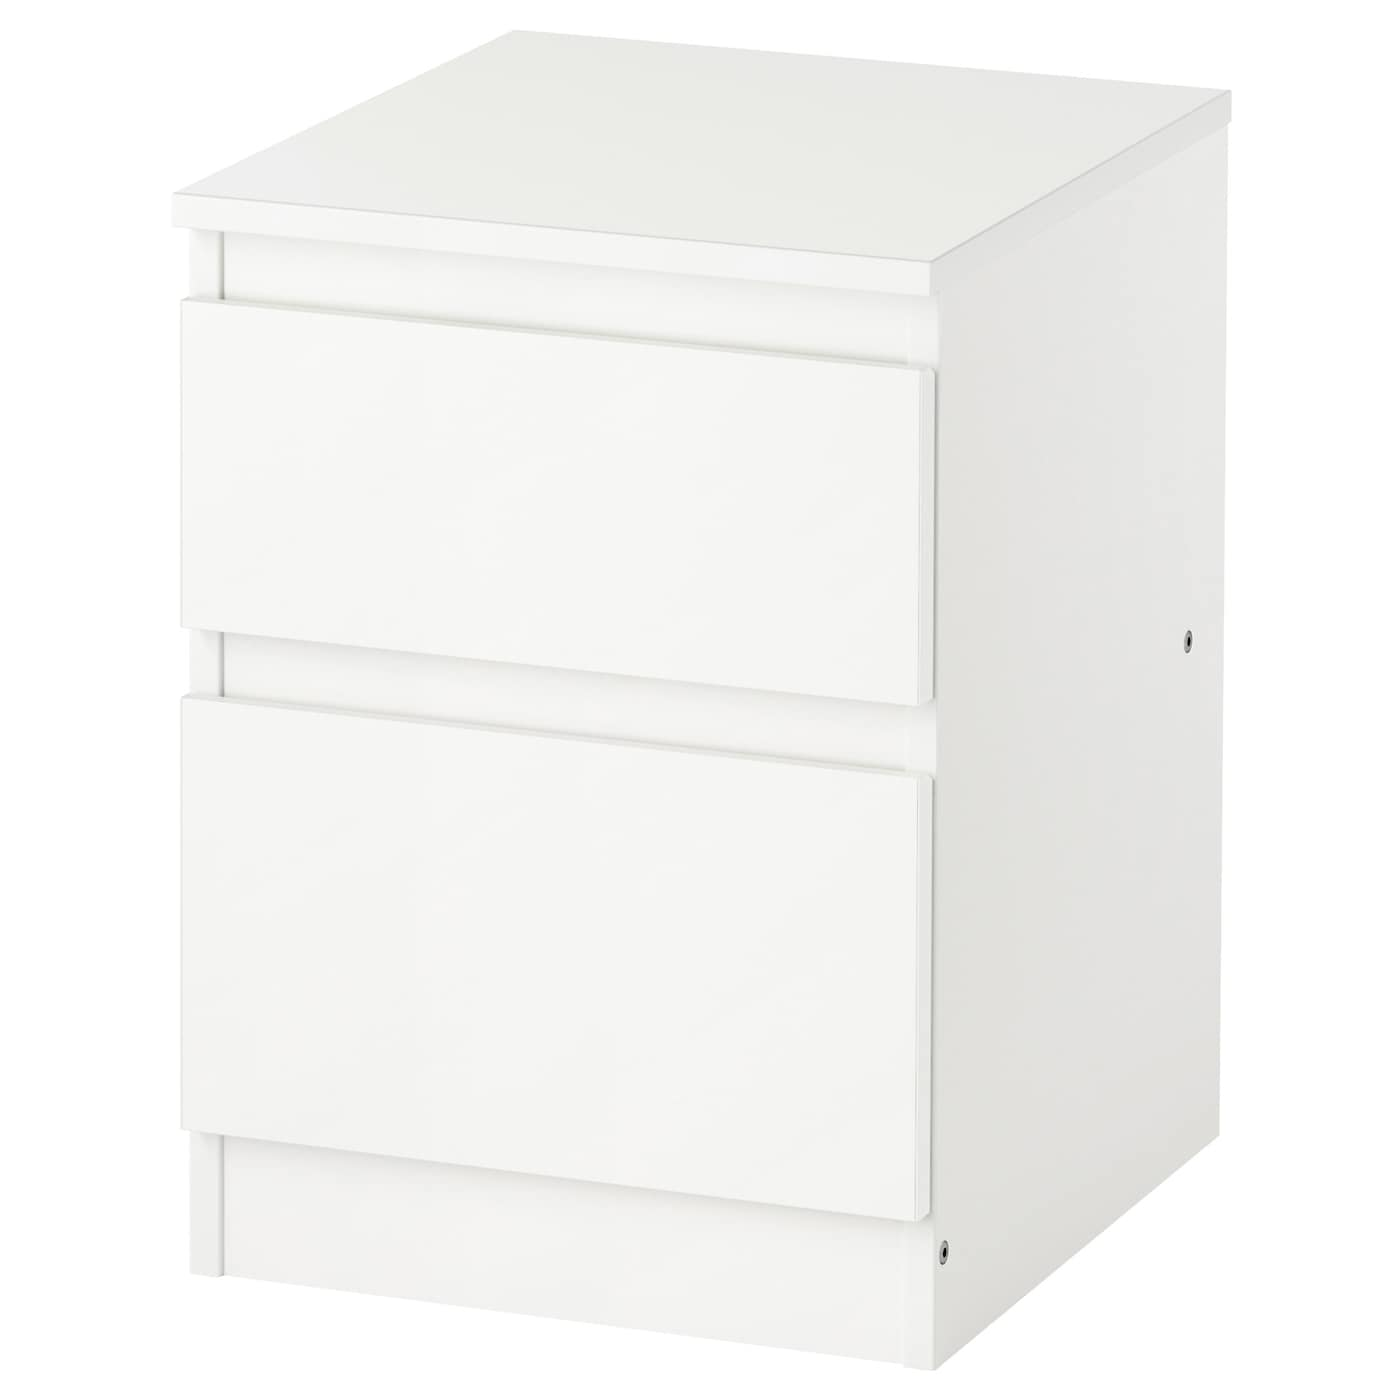 Kullen commode 2 tiroirs blanc 35x49 cm ikea for Ikea blanc commode